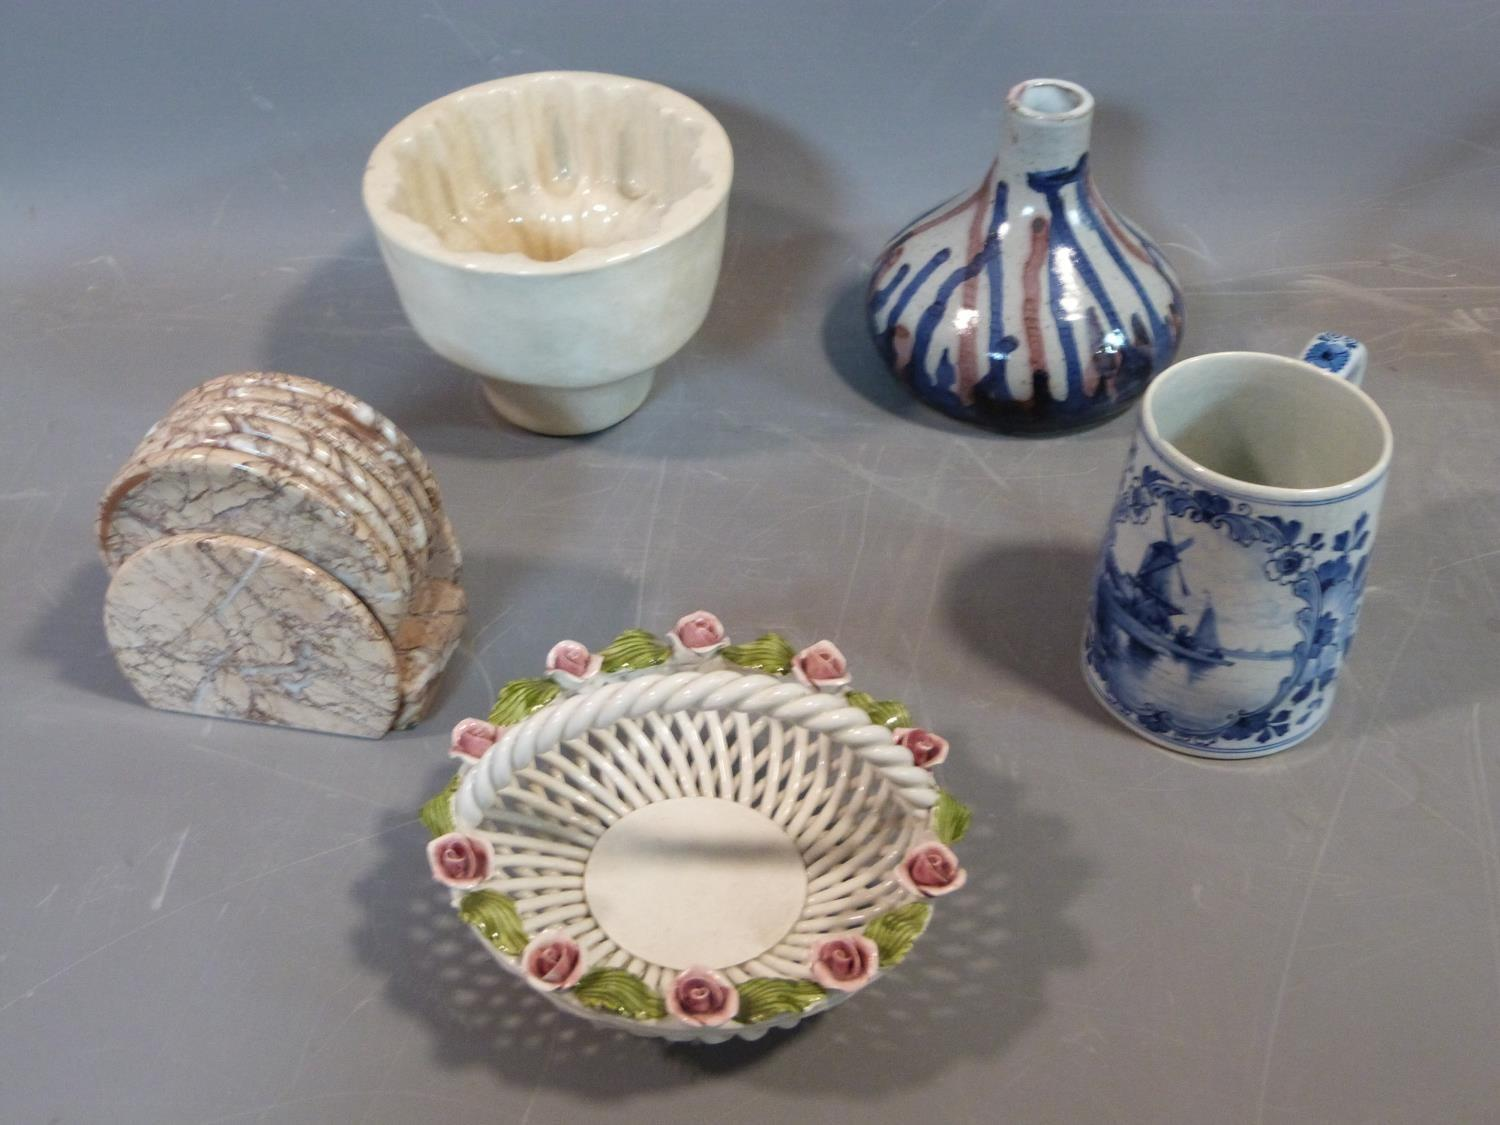 A collection of studio pottery. Including an antique ceramic jelly mould, woven Italian ceramic